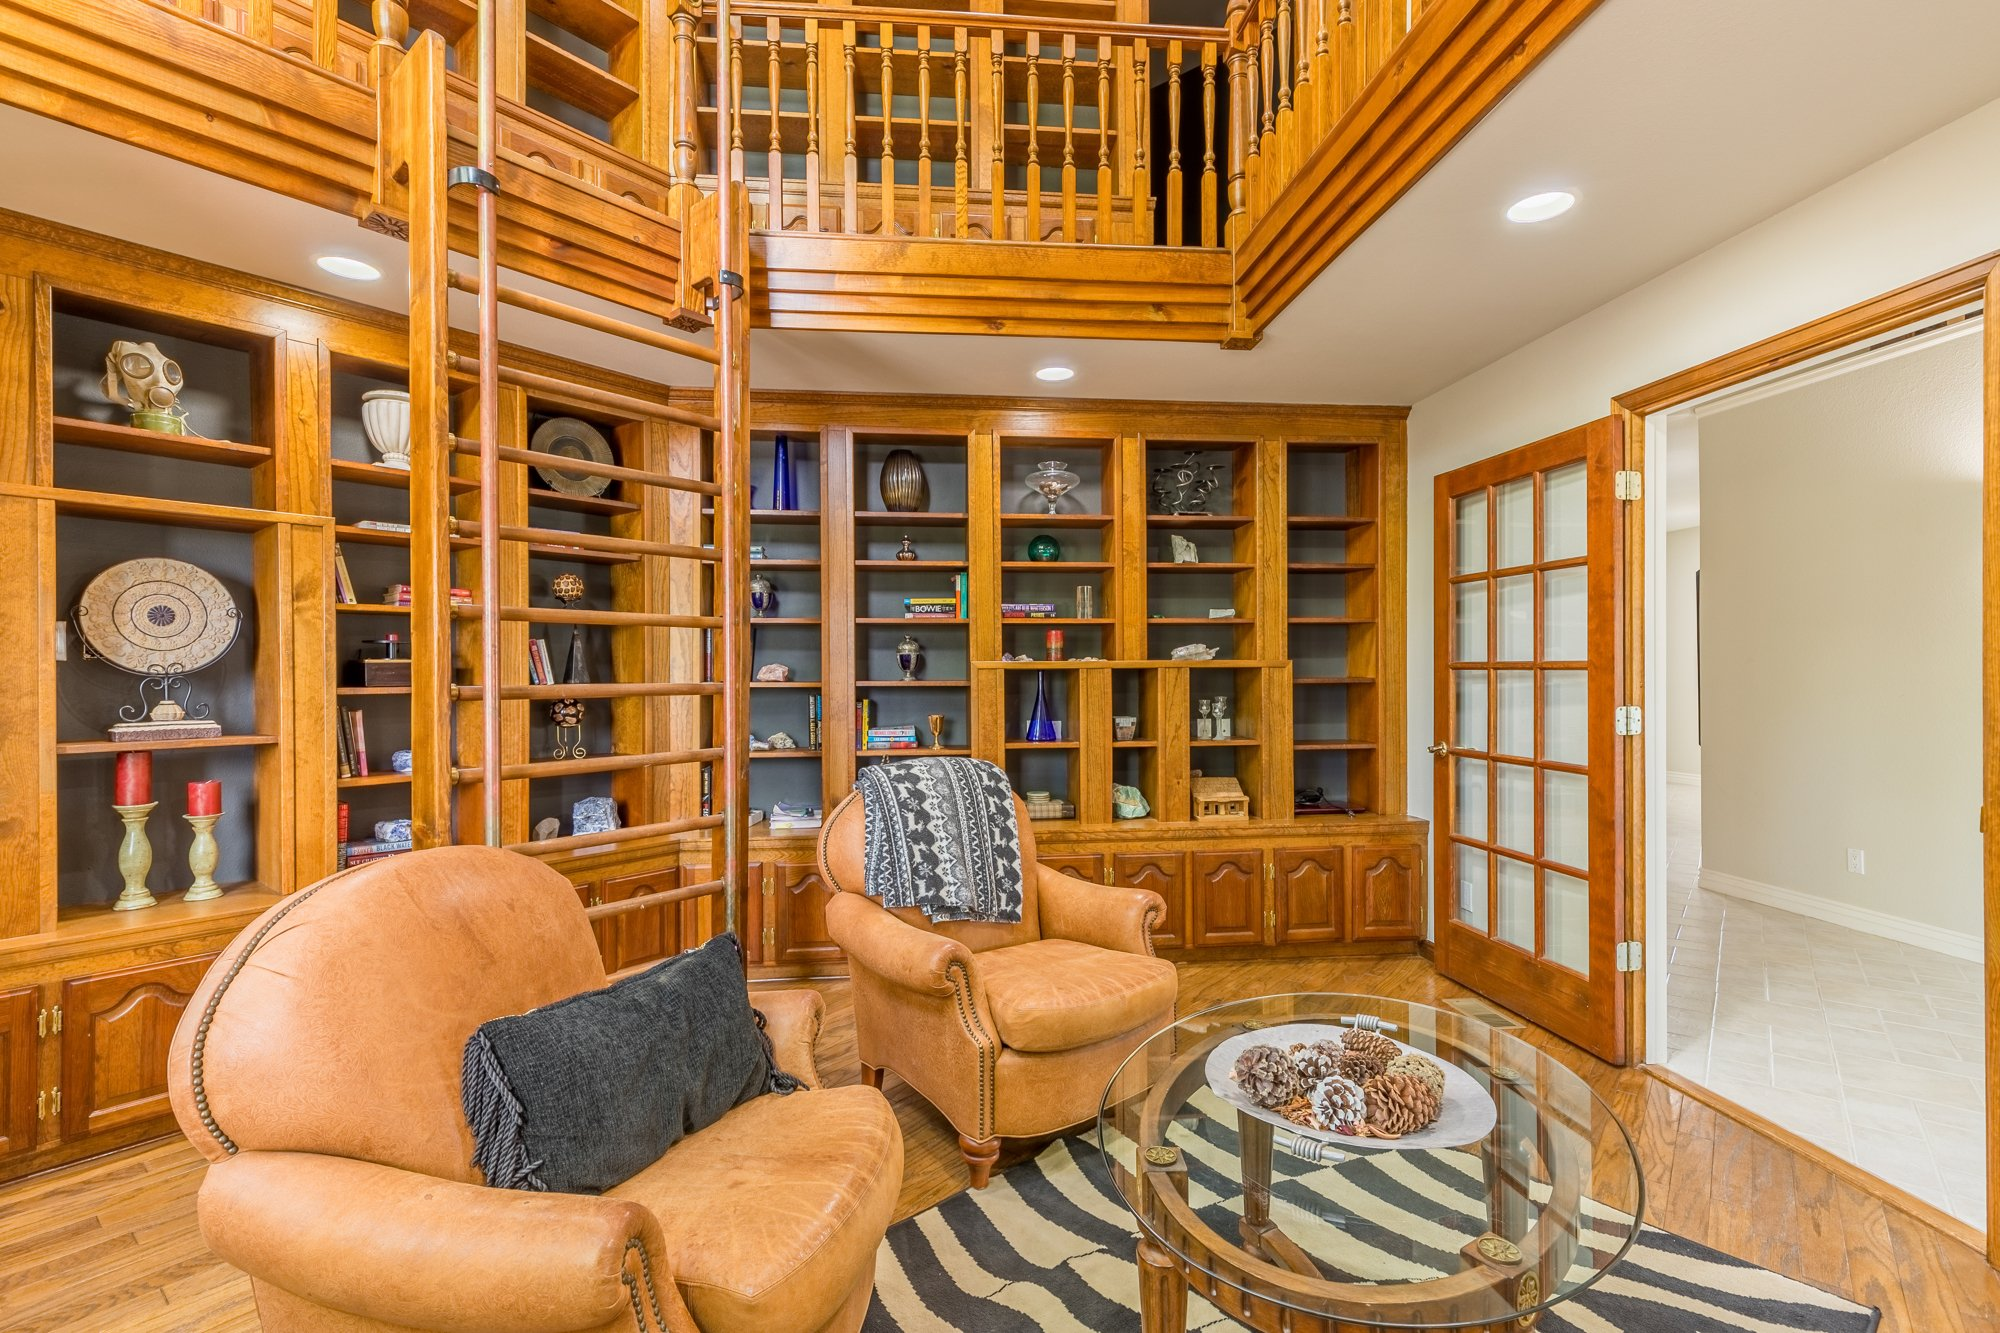 Library with Built-Ins - 16955 Wildwood Dr. Montrose, CO 81403 - Atha Team Luxury Real Estate